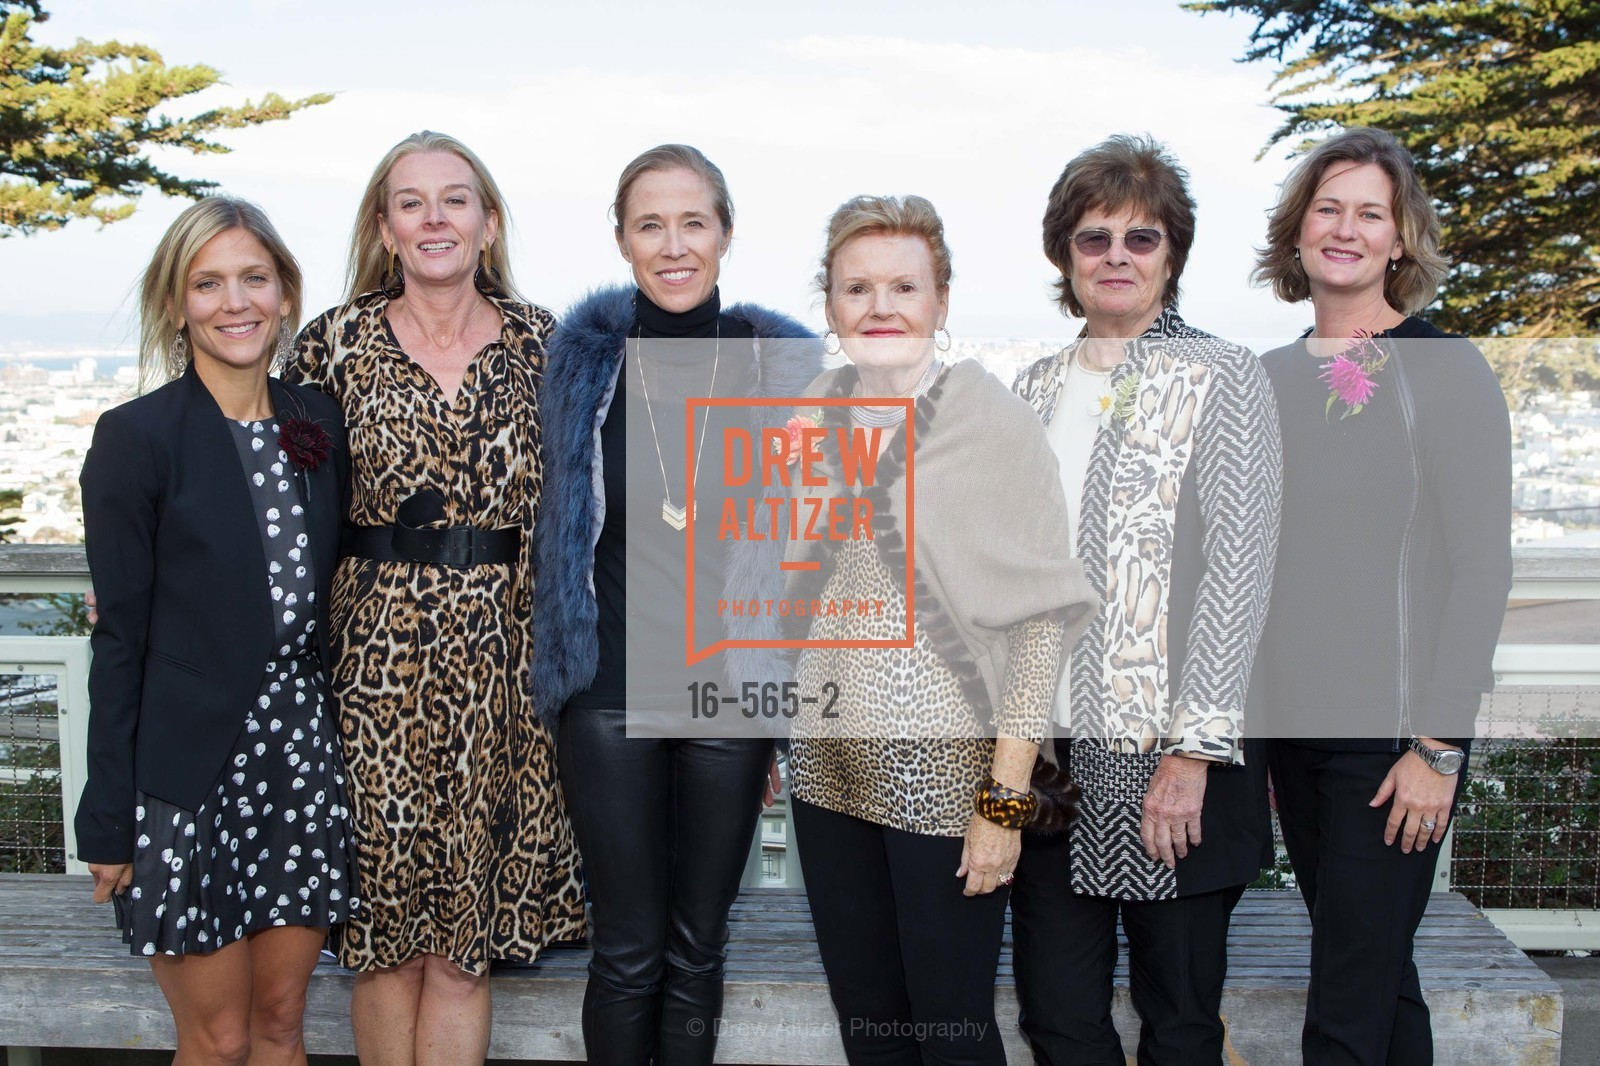 Leith Barry, Tricia Sellman, Palmer Weiss, Connie Goodyear Baron, Nancy Conner, Beth Roy Jenkyn, GLAAD GALA Kick-Off Party Hosted by SAKS FIFTH AVENUE, Saks Fifth Avenue. 384 Post Street, September 12th, 2014,Drew Altizer, Drew Altizer Photography, full-service agency, private events, San Francisco photographer, photographer california